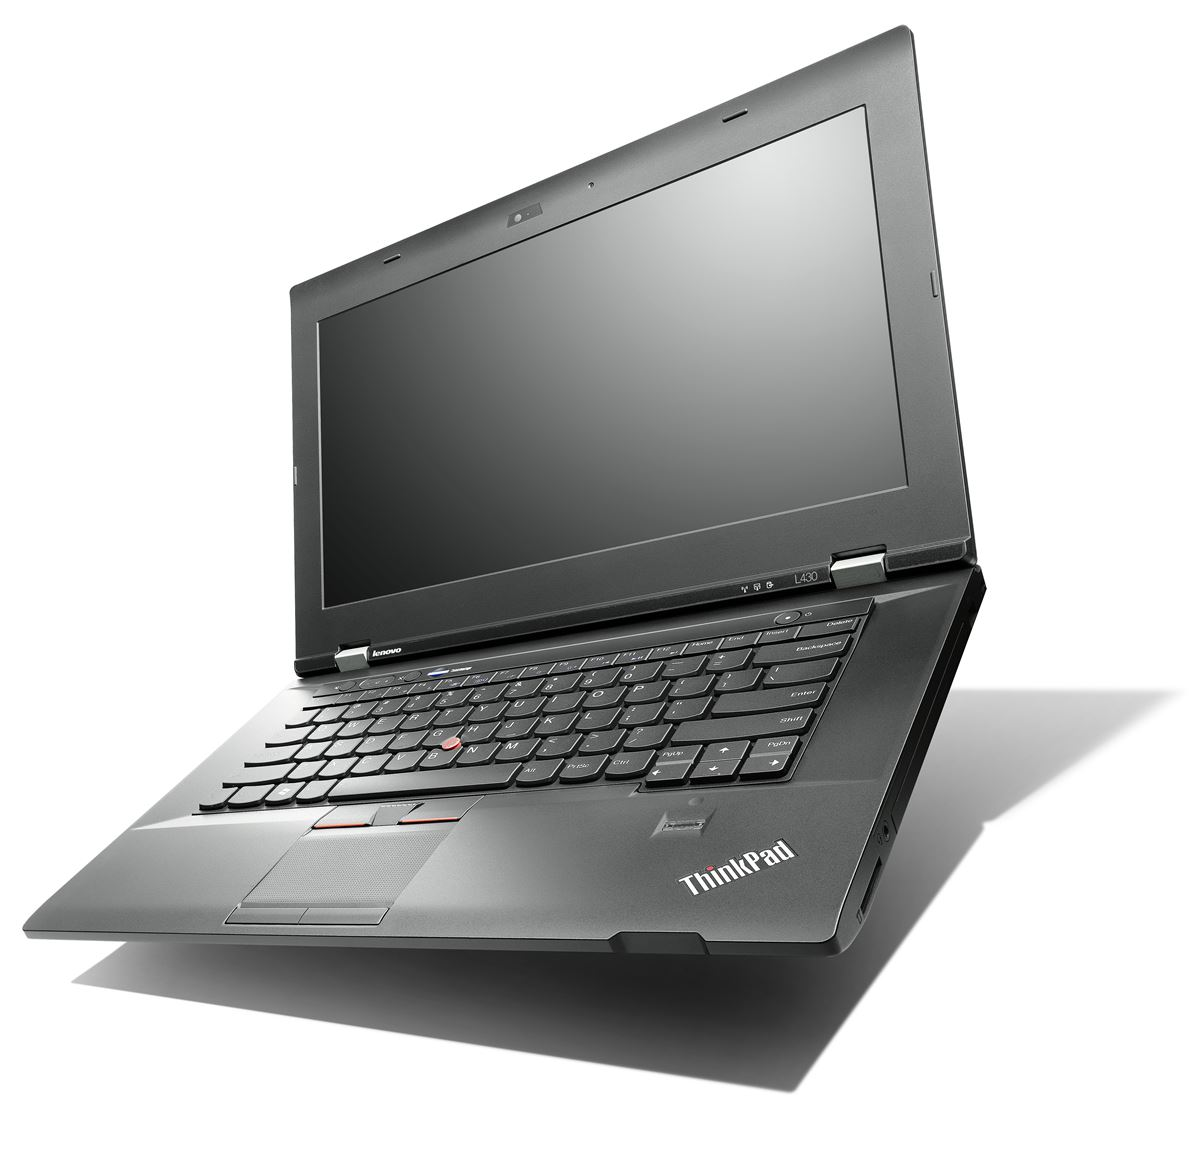 "Lenovo L430 14"" LED Display, Intel Core i5-3320M, 4GB RAM, 500GB HDD, Windows 7 Pro 64-Bit / Windows 8 Pro"